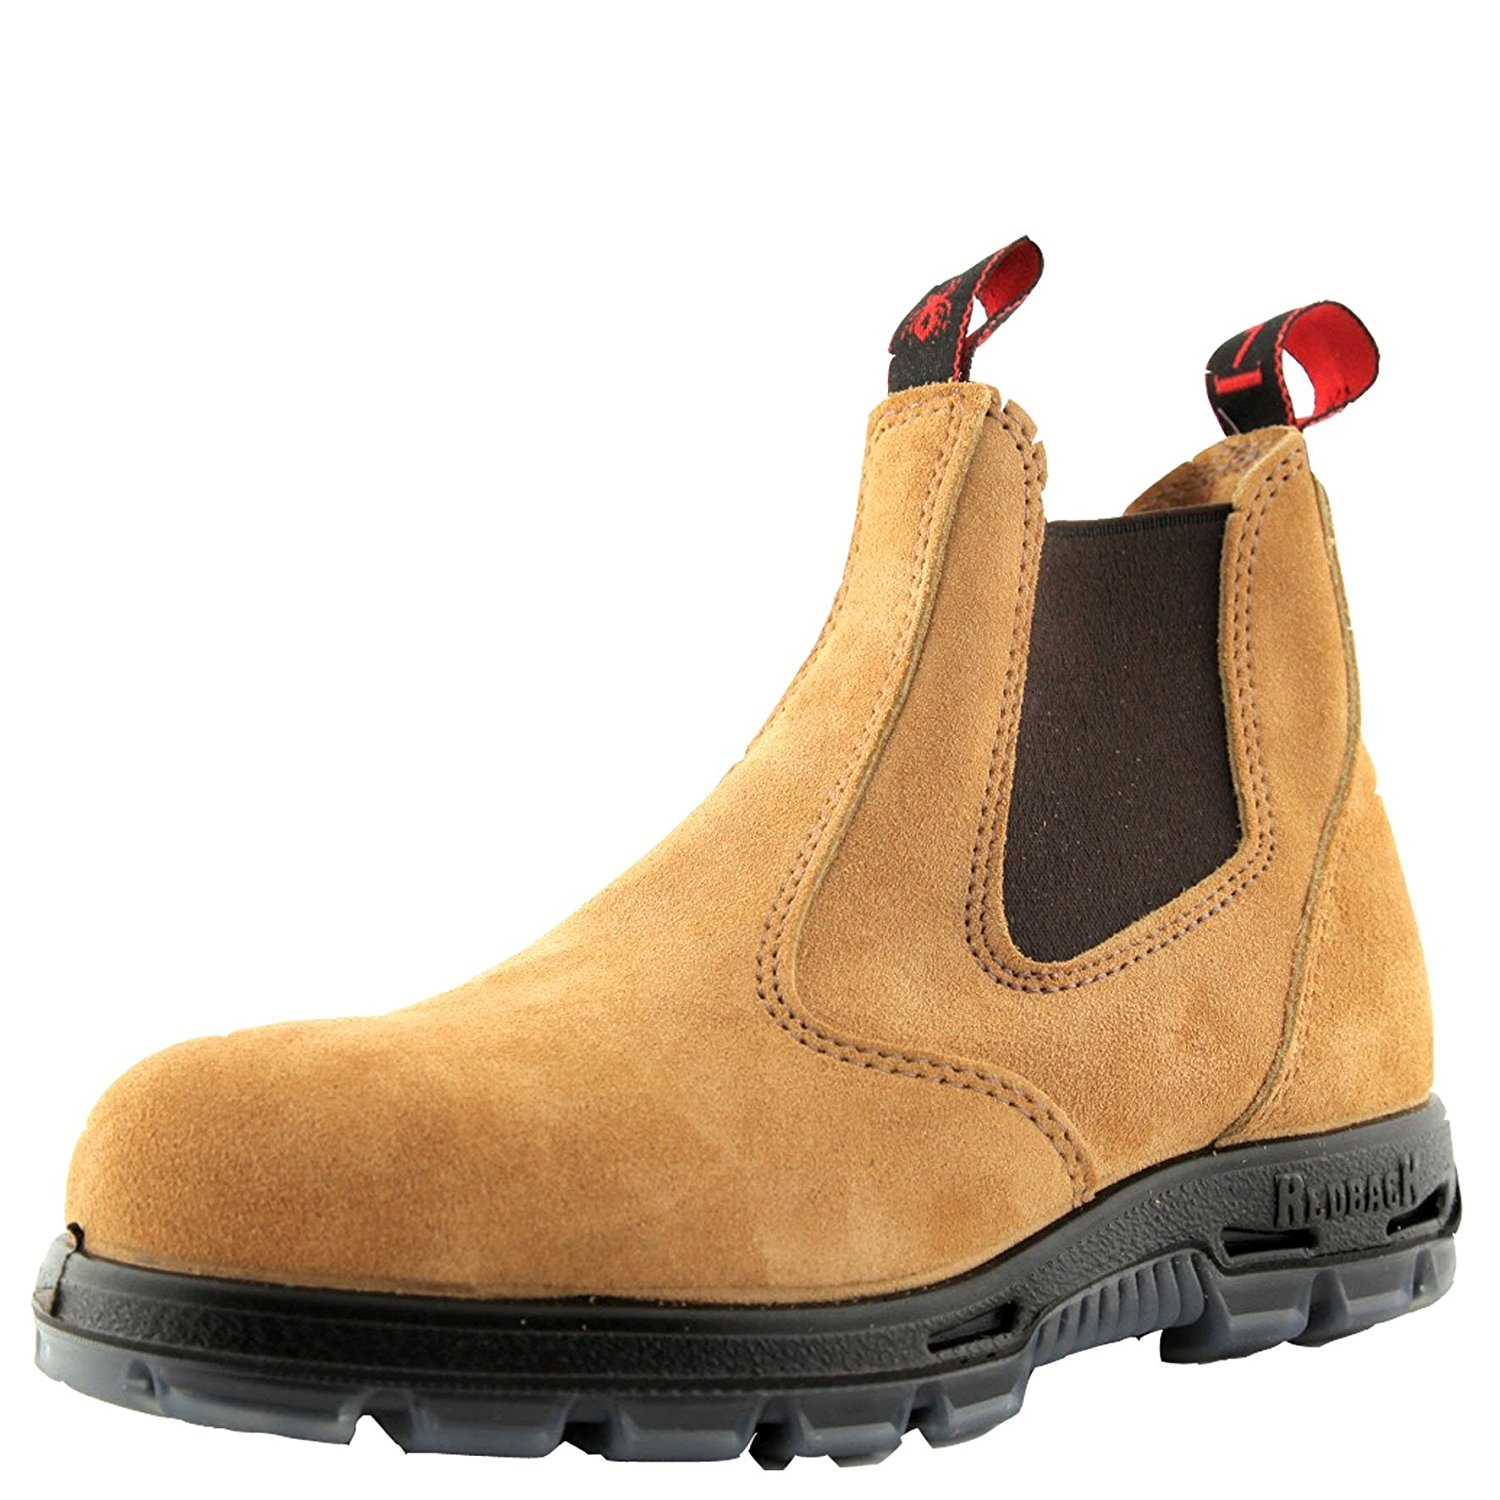 9ebe93201fd Cheap Redback Boots, find Redback Boots deals on line at Alibaba.com